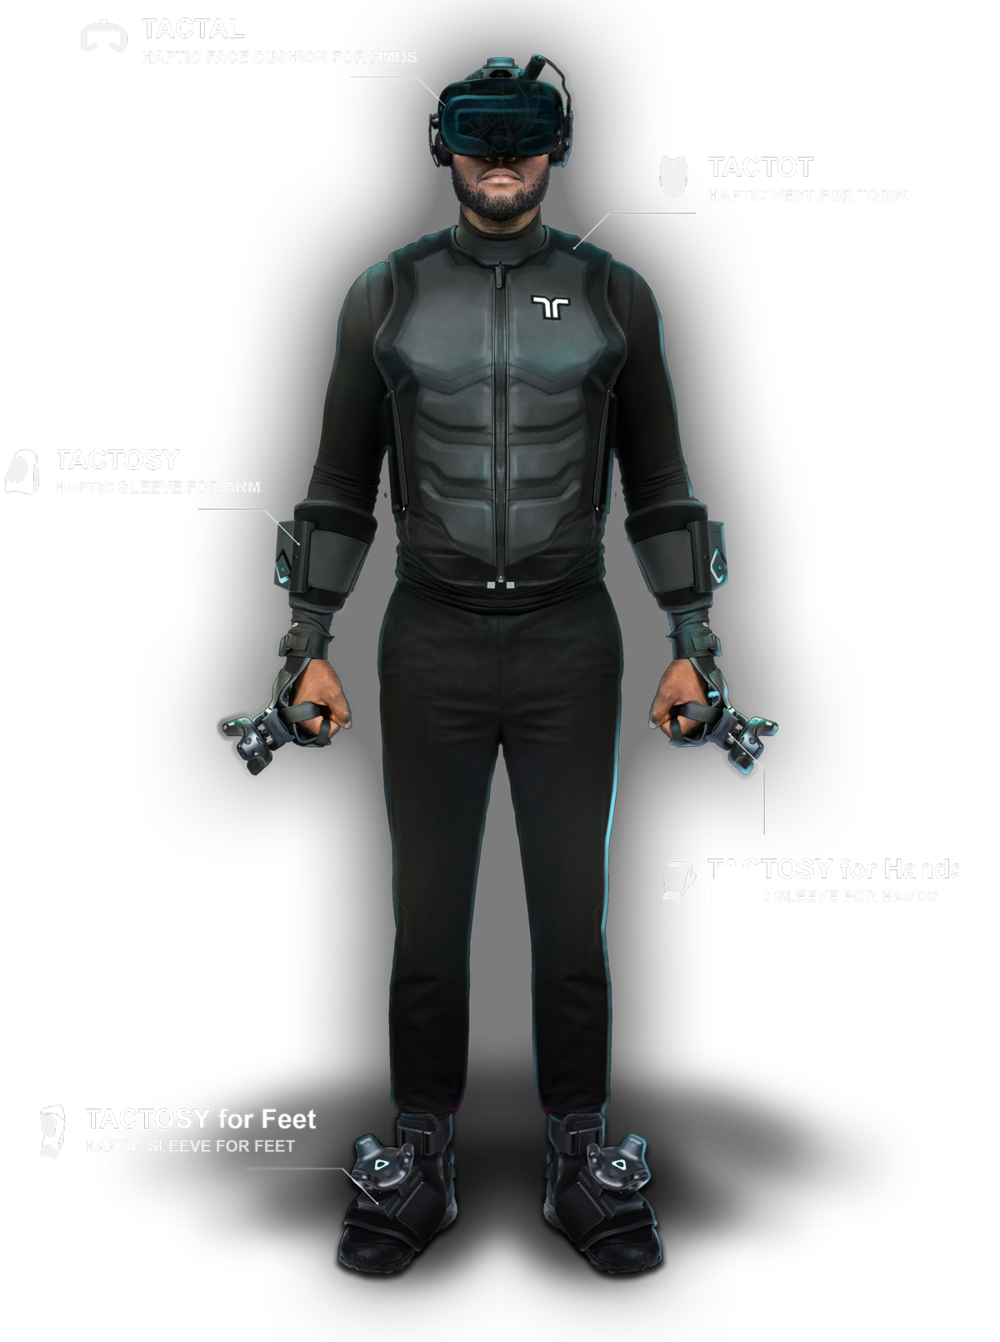 tactsuits_edwin2.png